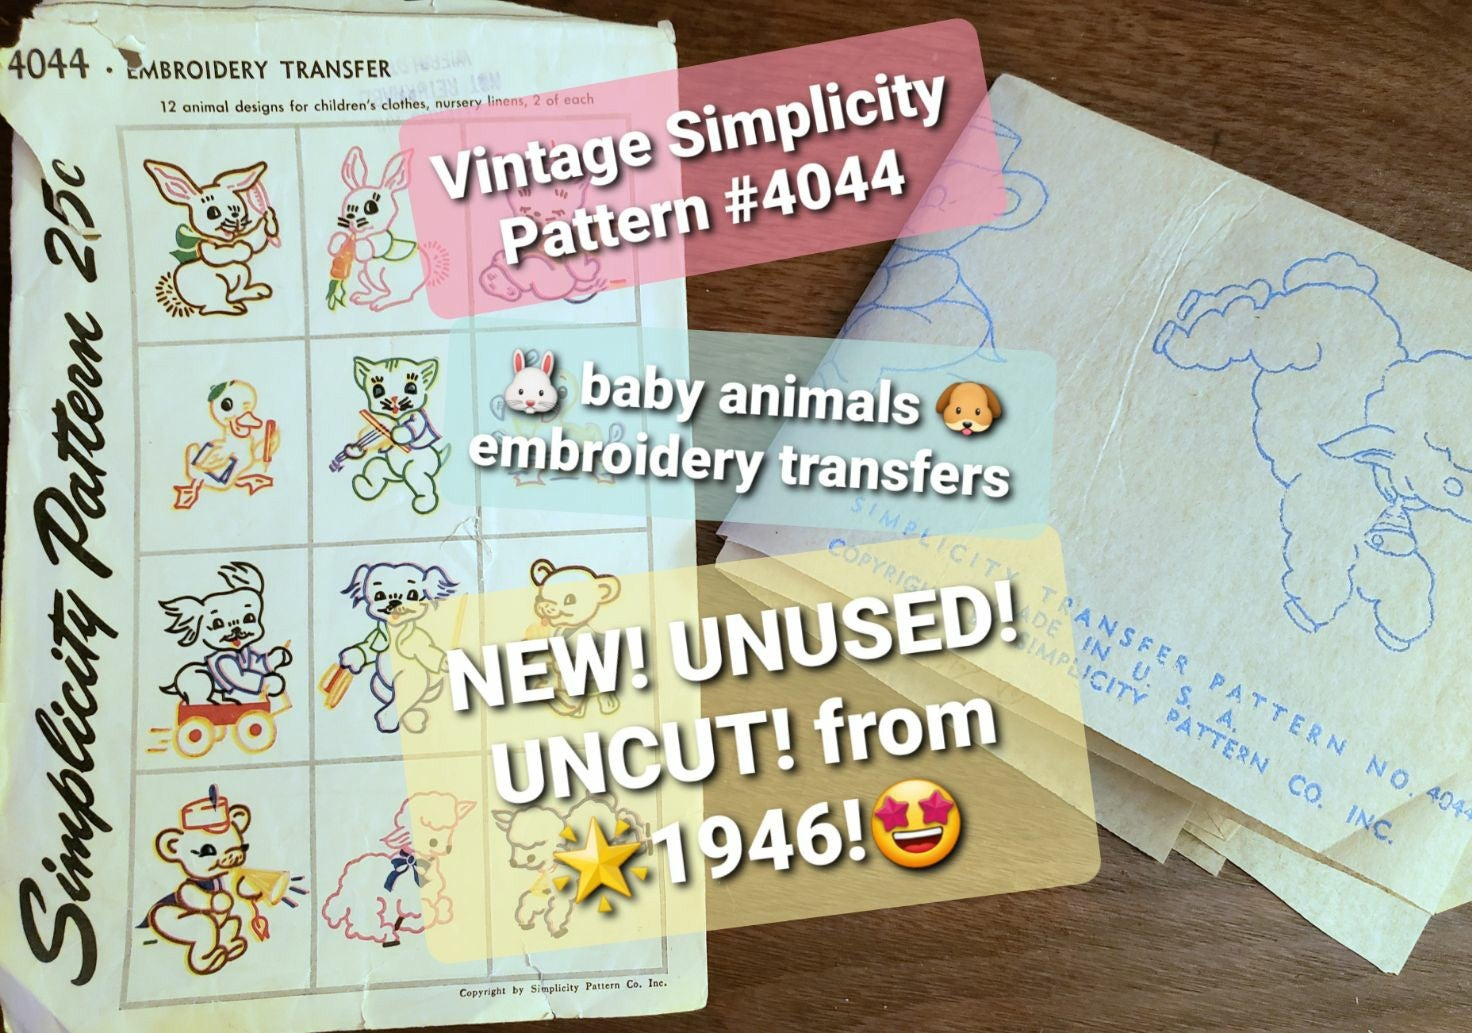 Vintage Simplicity Embroidery Transfers